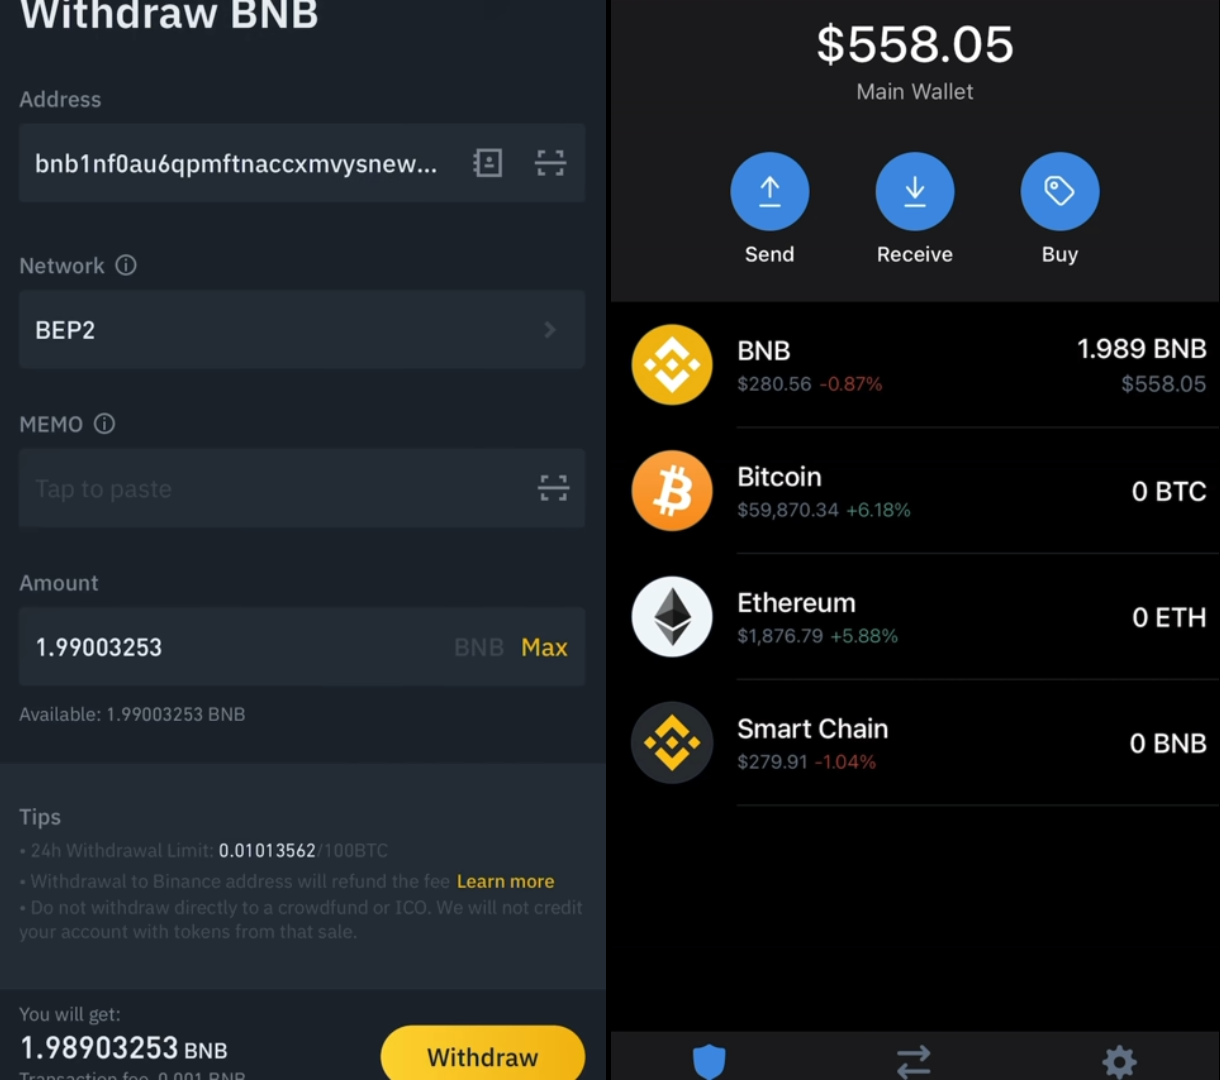 Step 3. Withdraw BNB to the wallet